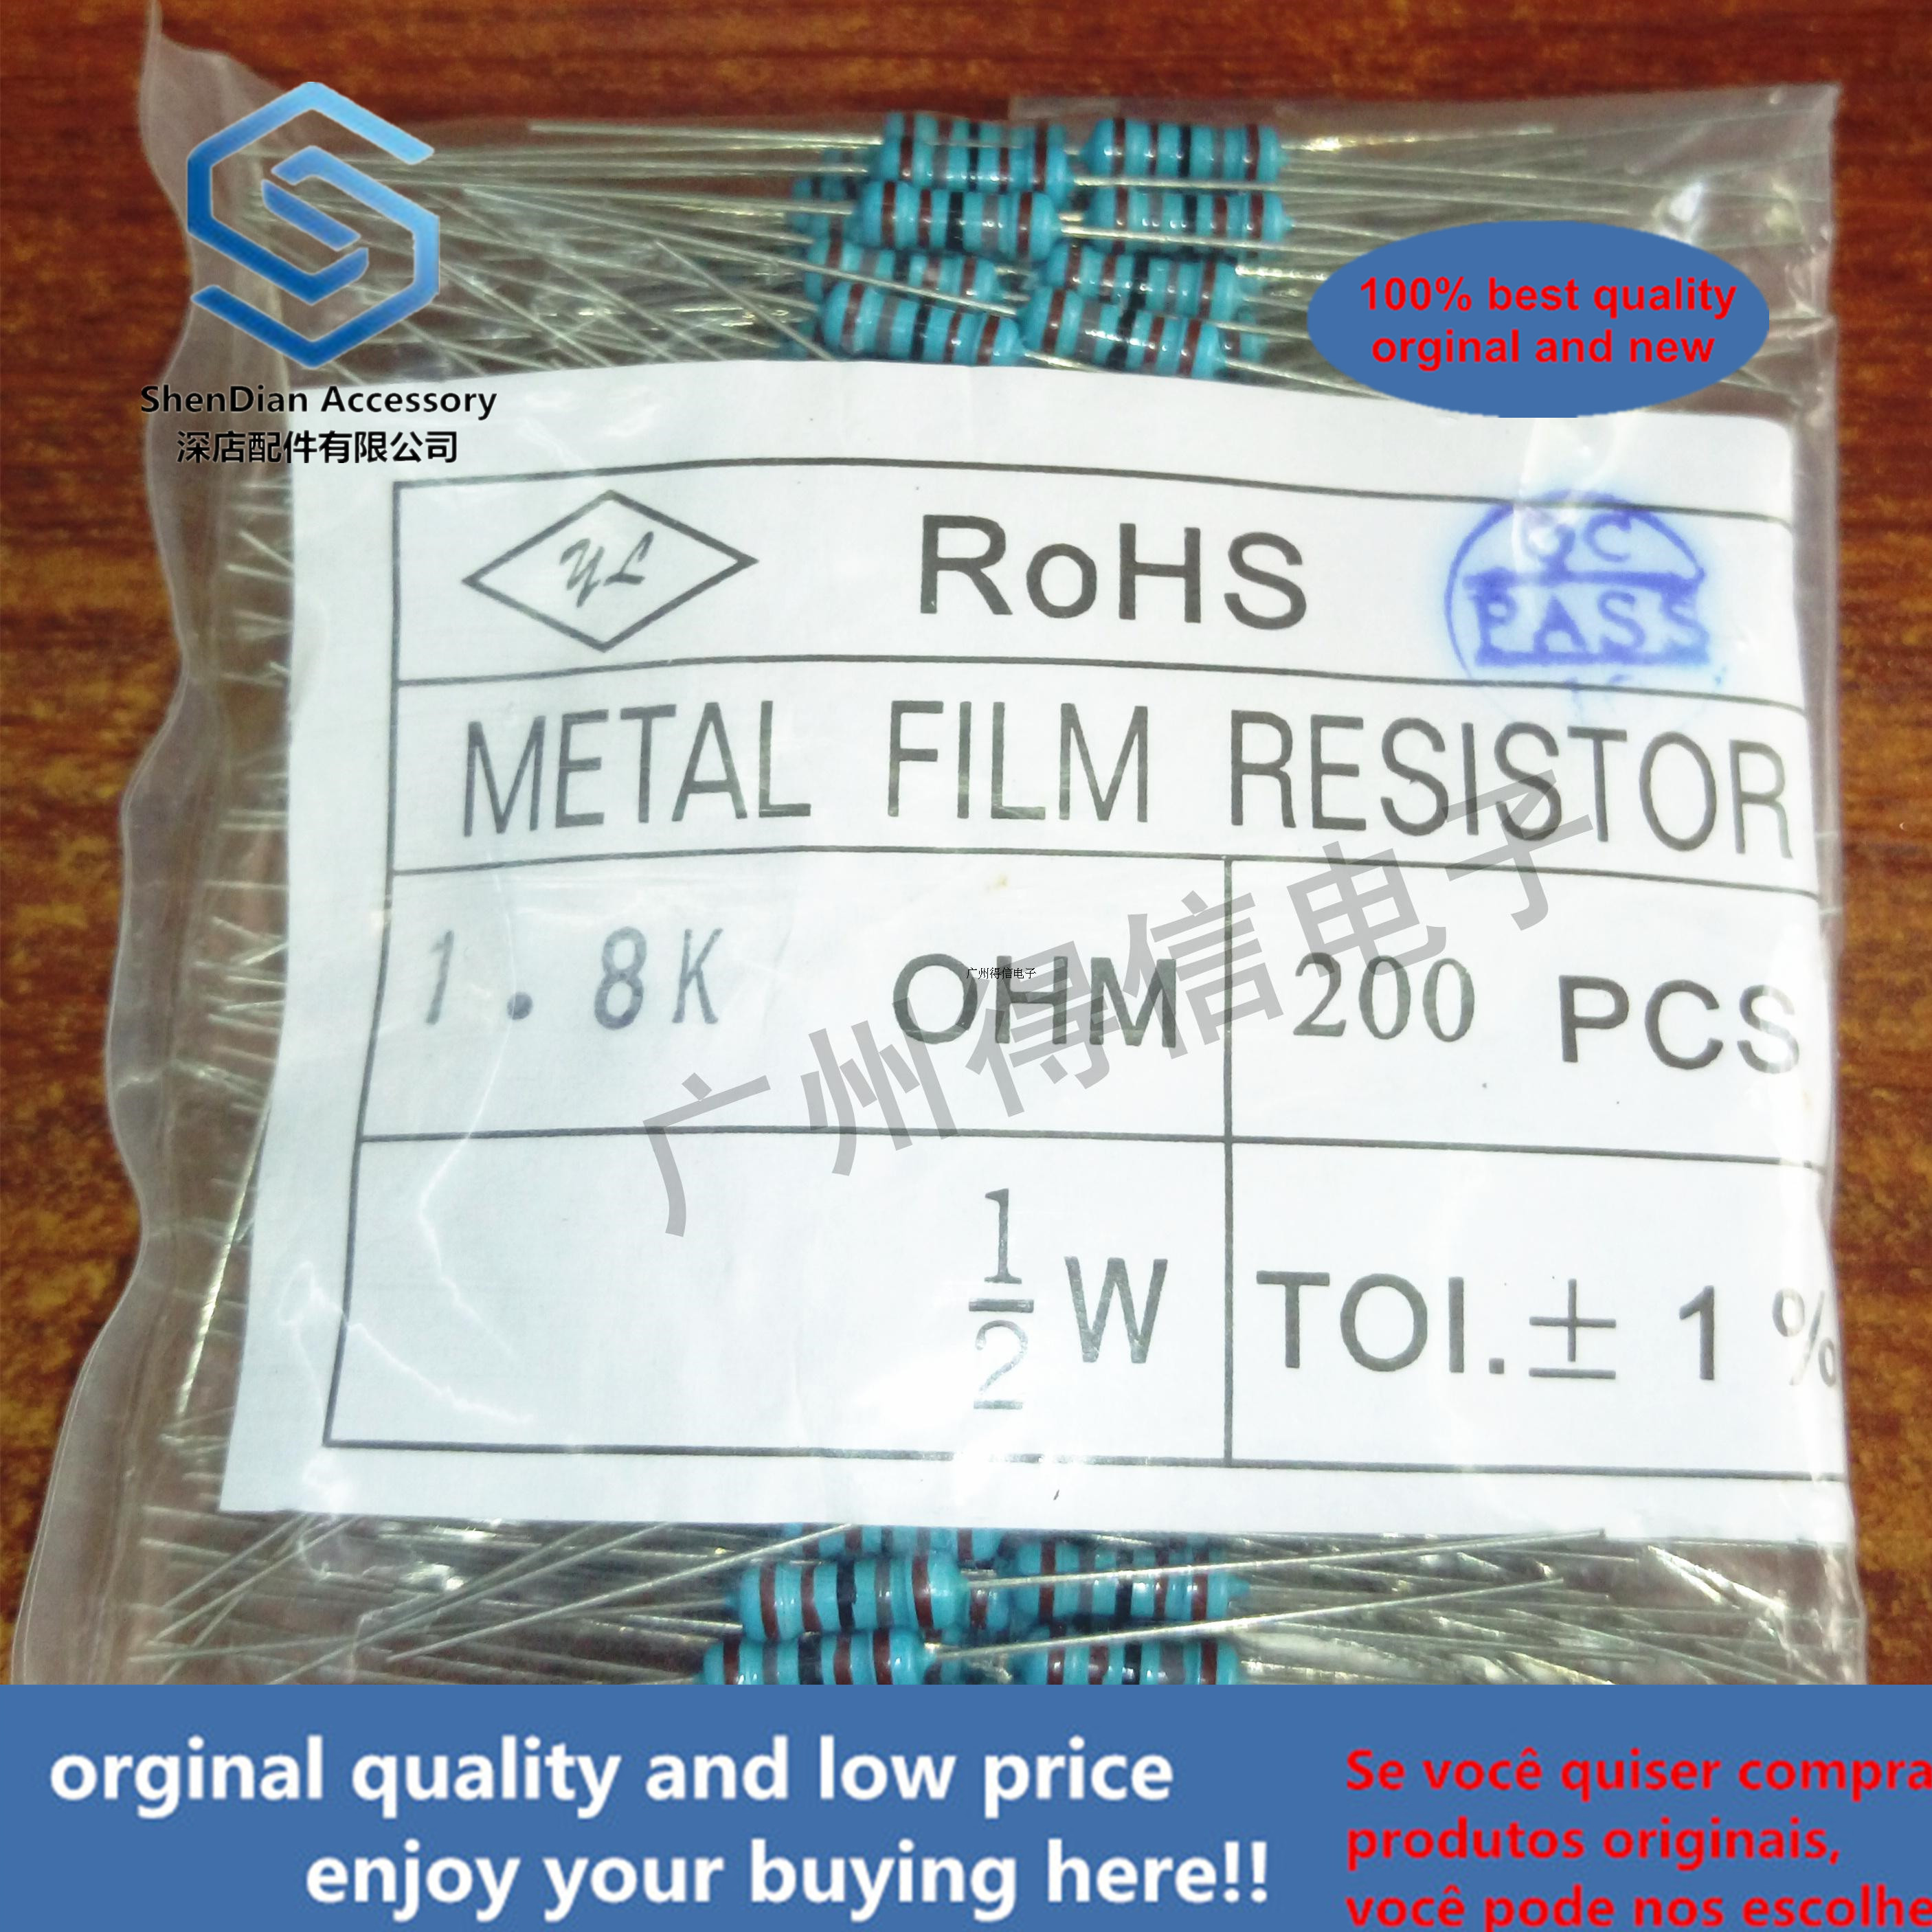 200pcs 1 / 2W 1.3R 1.3 Euro 1% Brand New Metal Film Iron Feet Resistance Bag Pack 200 Pcs